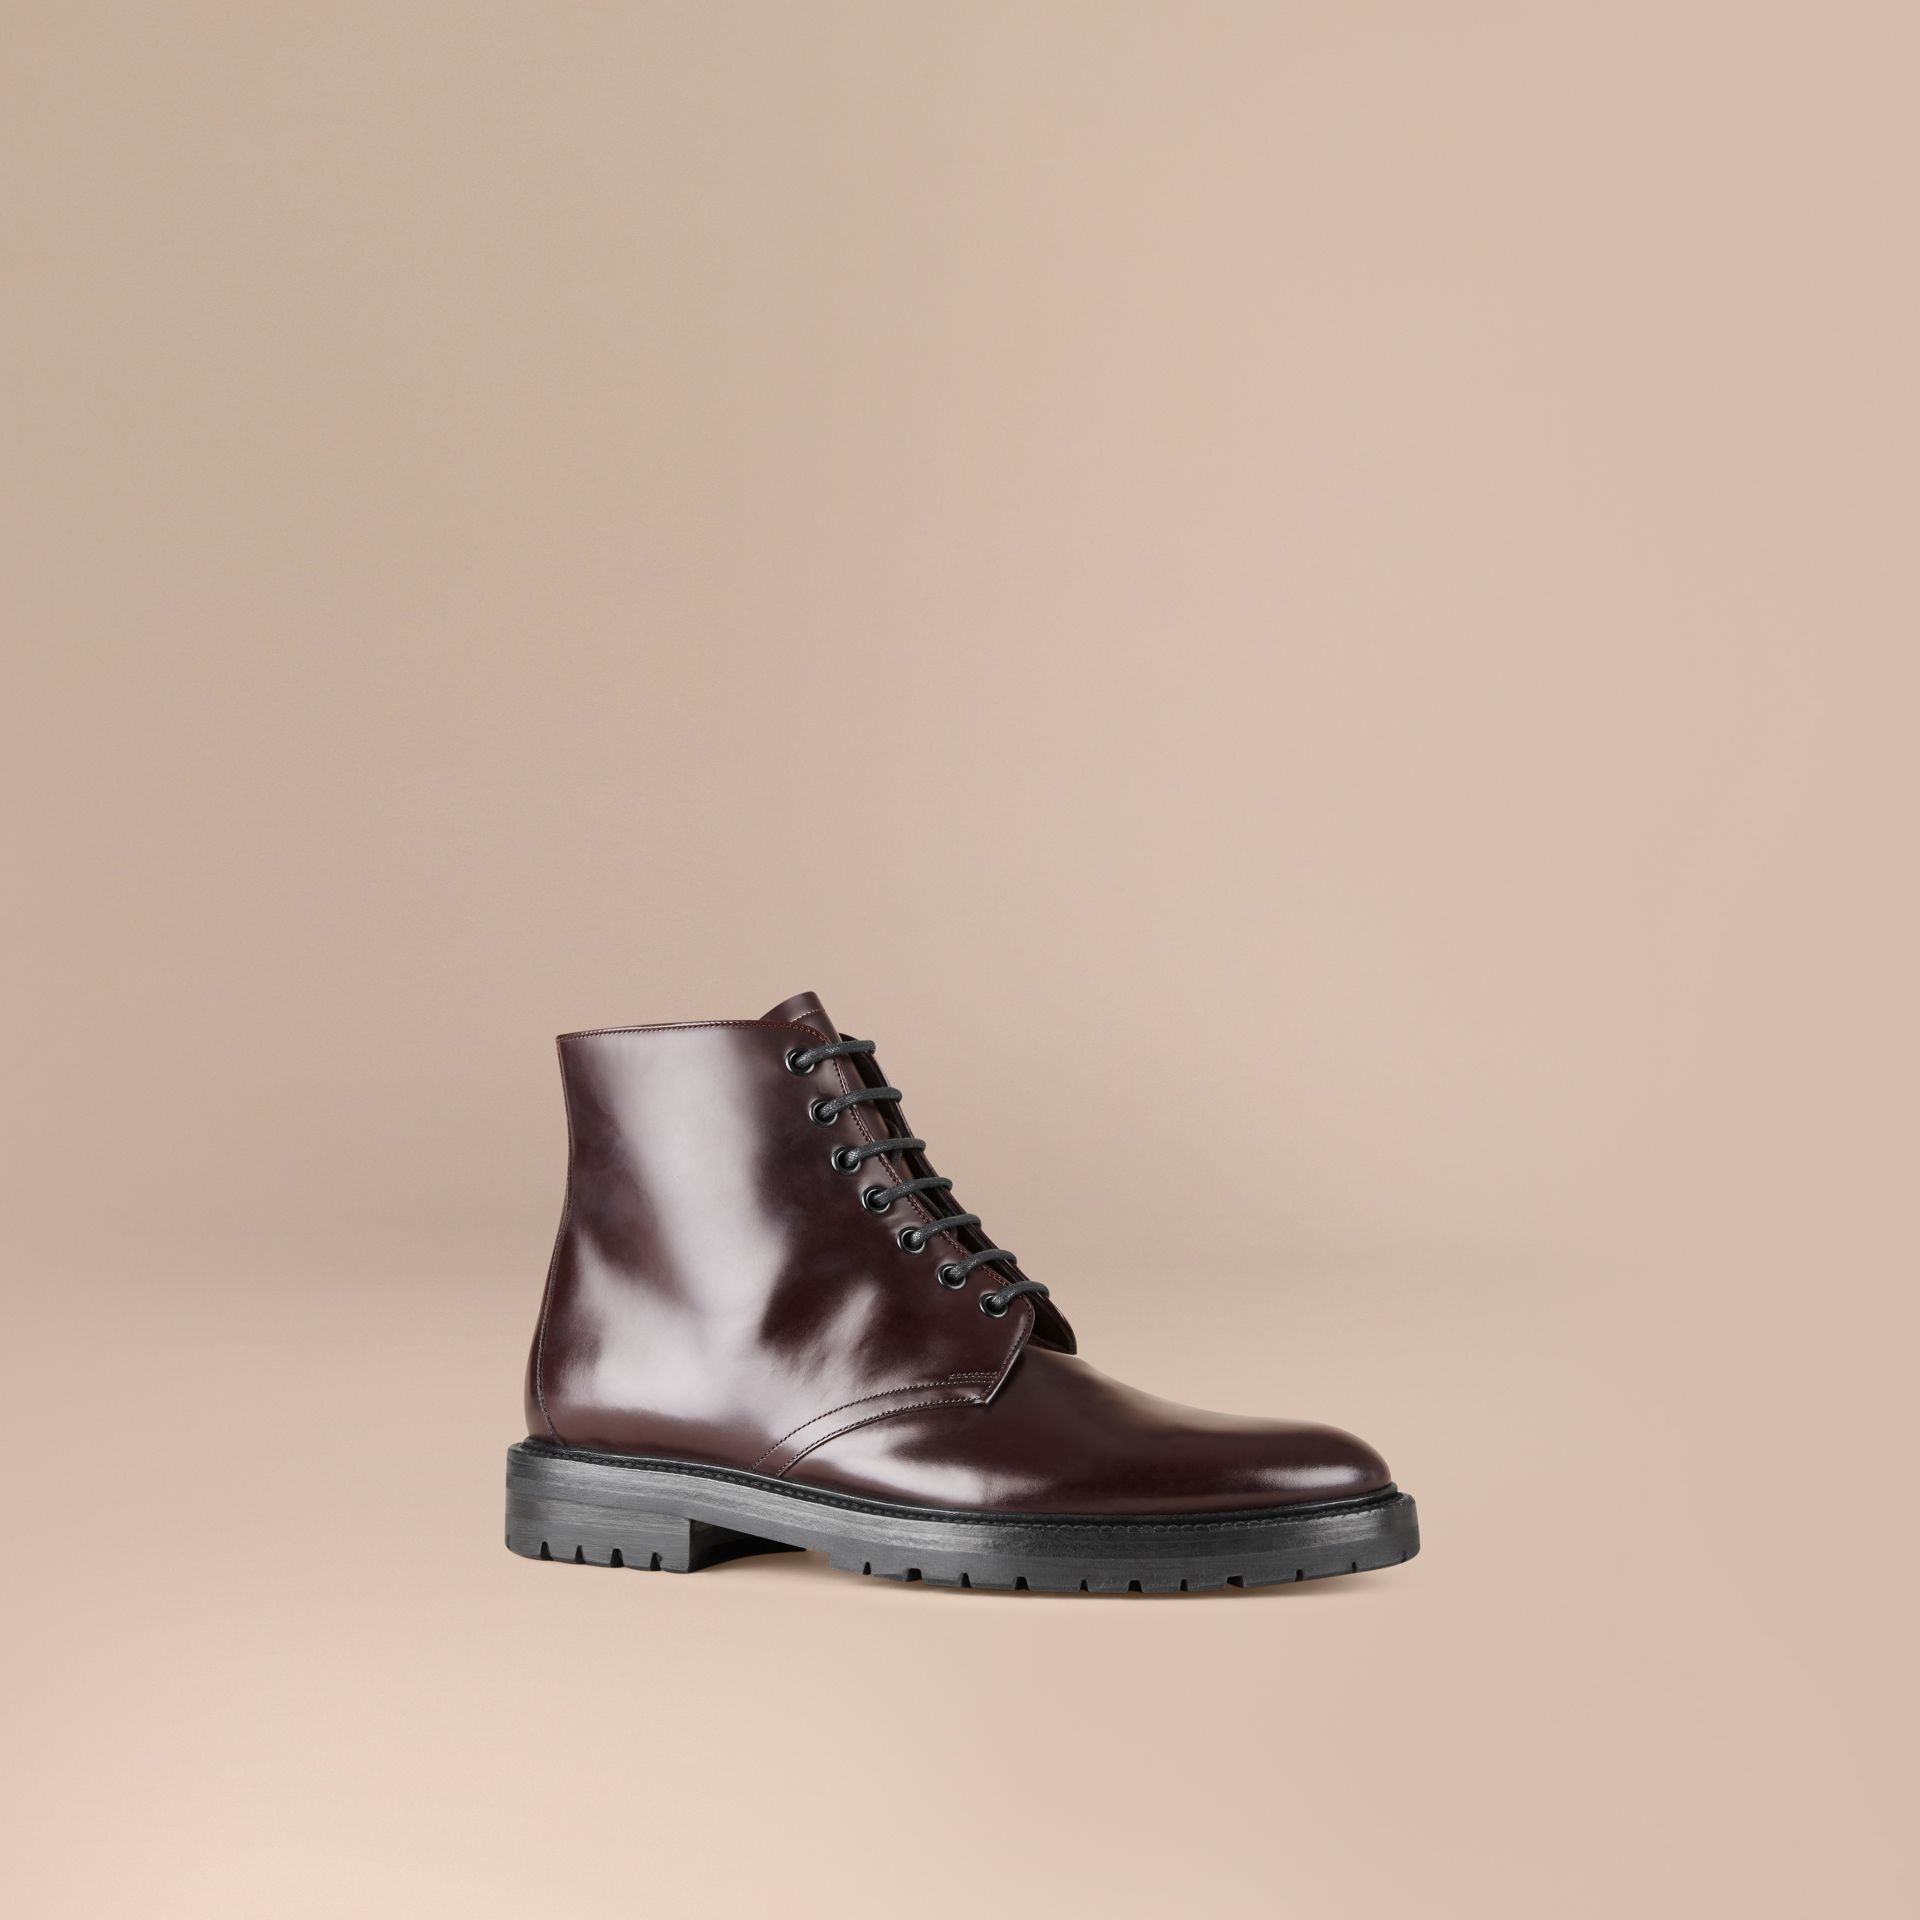 Oxblood Lace-up Leather Boots Oxblood - gallery image 1